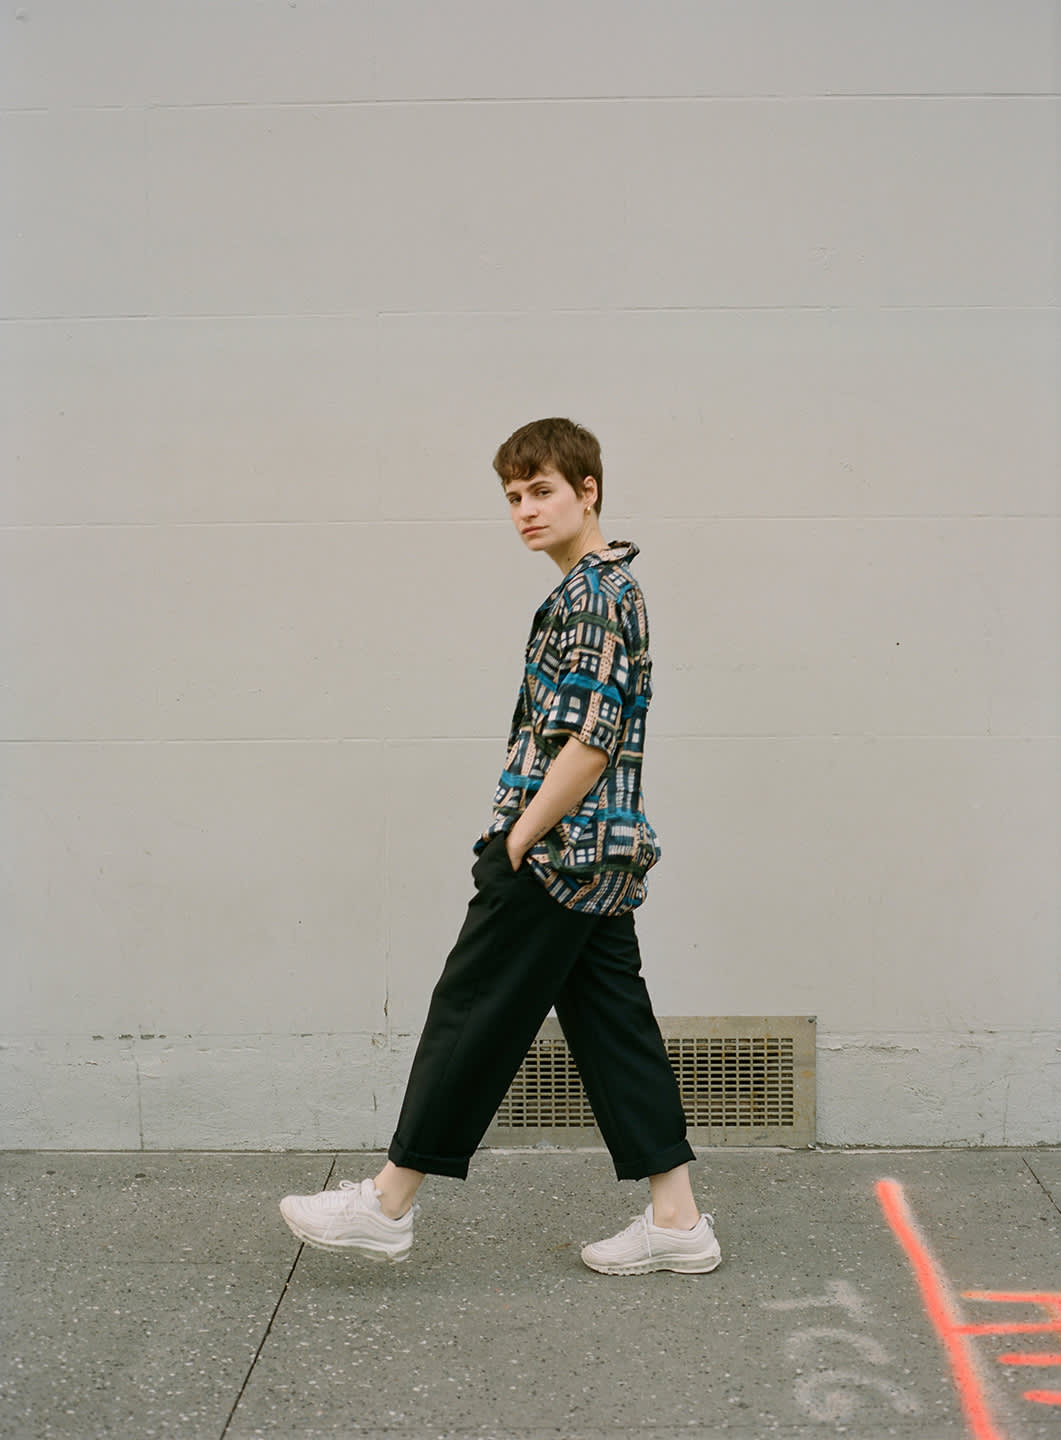 Christine and the Queens for The Fader